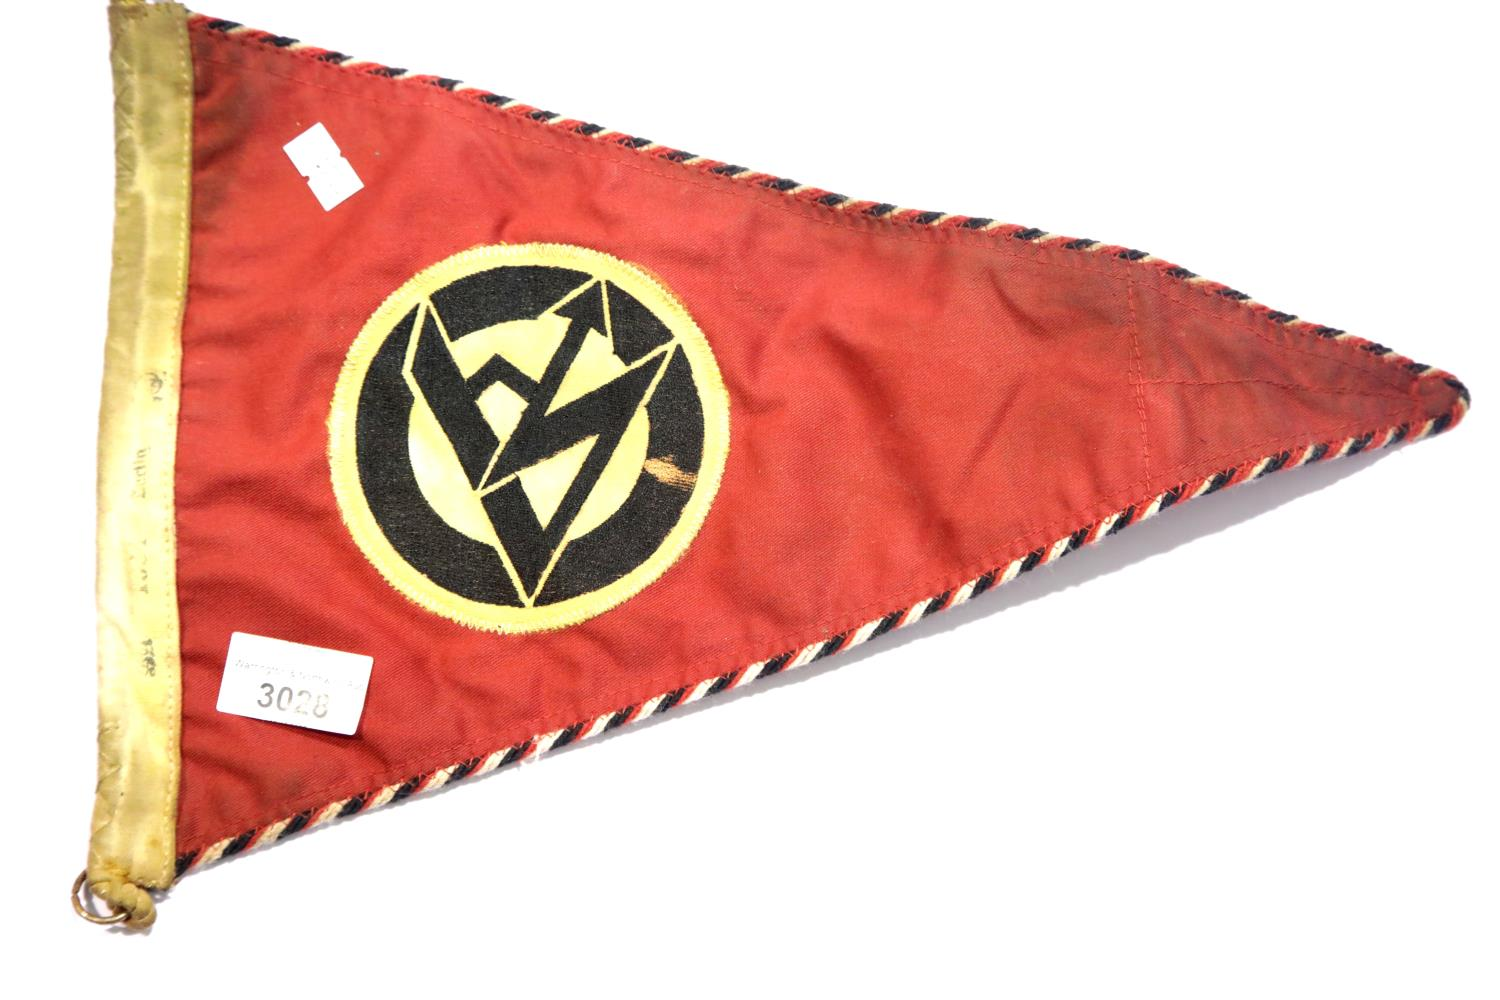 Lot 3028 - German Third Reich type SA pennant, stamped Berlin and dated 1934. P&P Group 1 (£14+VAT for the